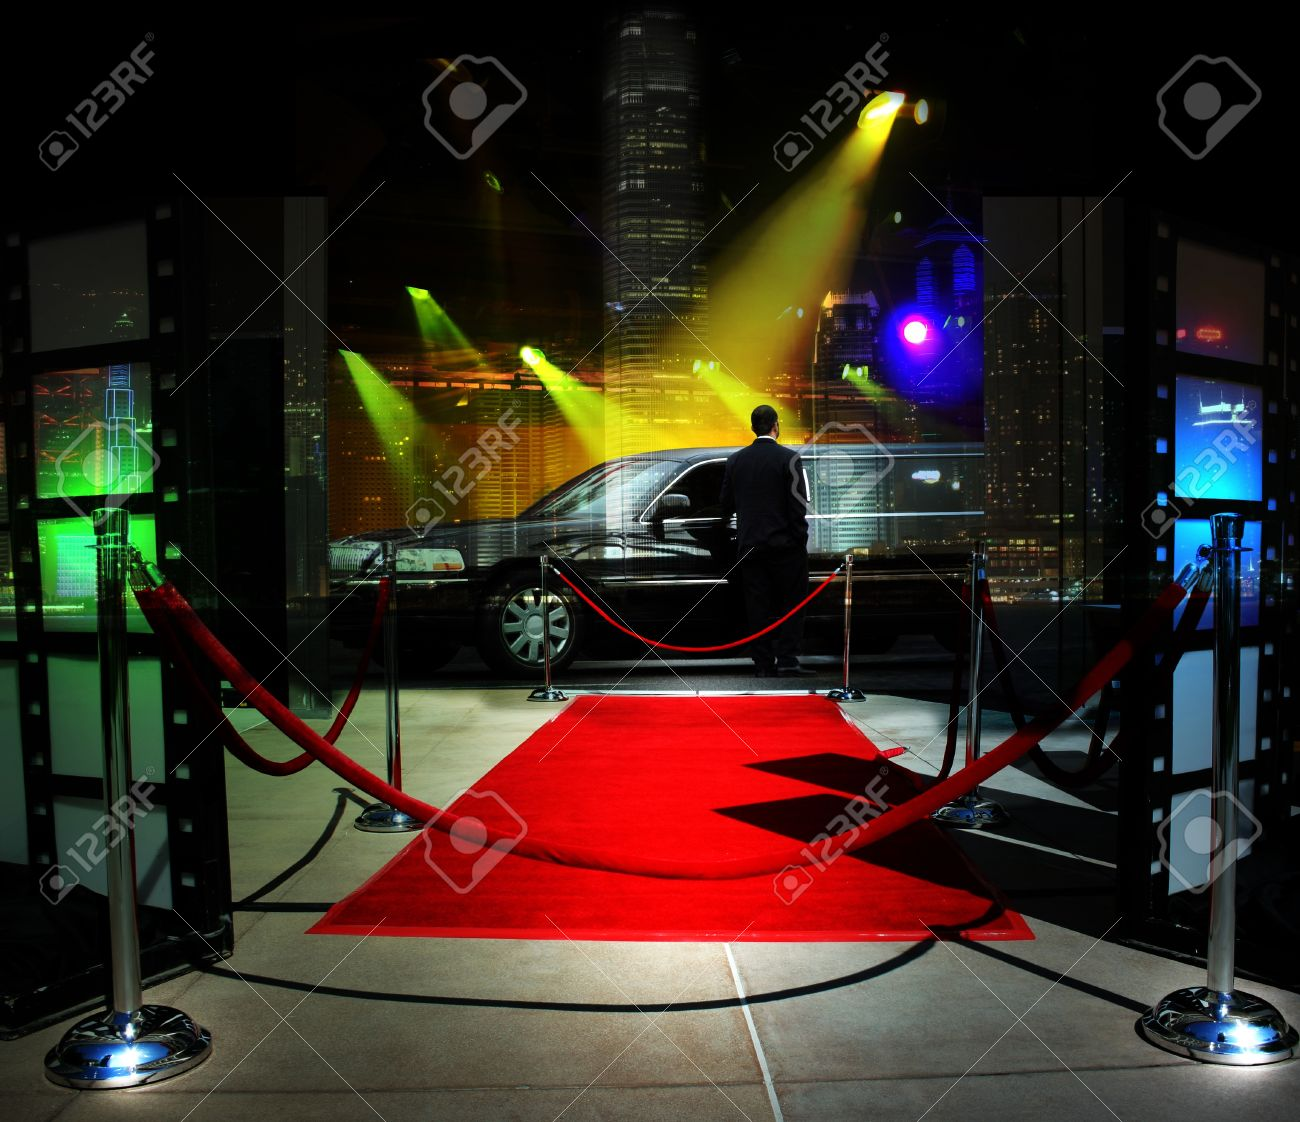 Red carpet event in downtown Stock Photo - 10243727